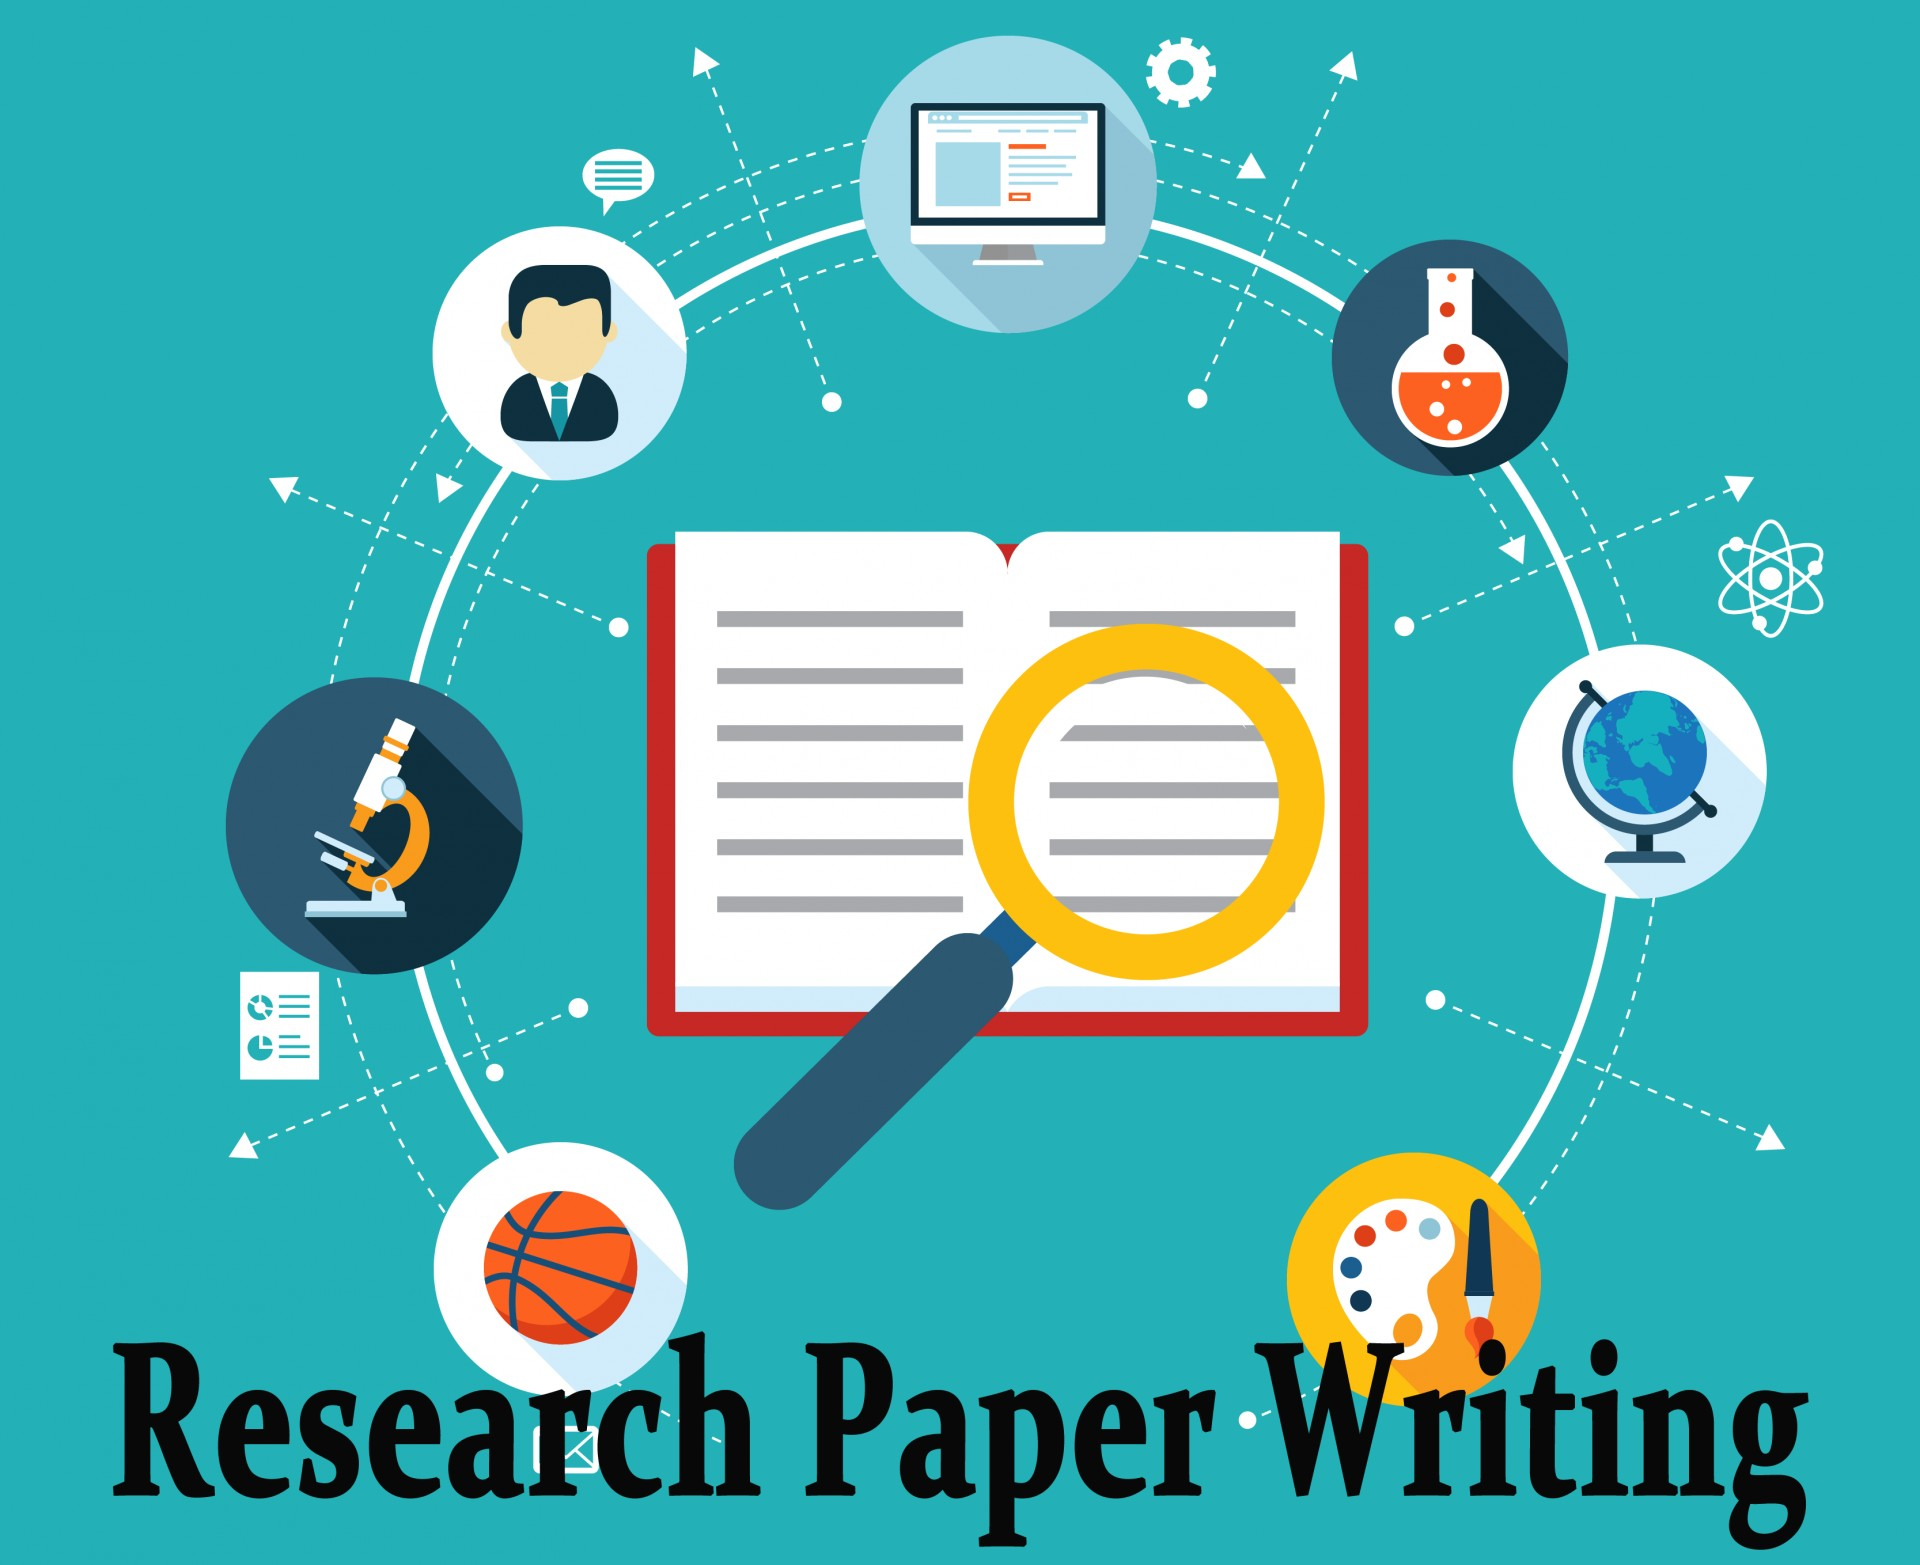 018 503 Effective Research Paper Writing Unique Papers A Complete Guide Pdf Download James D Lester 1920